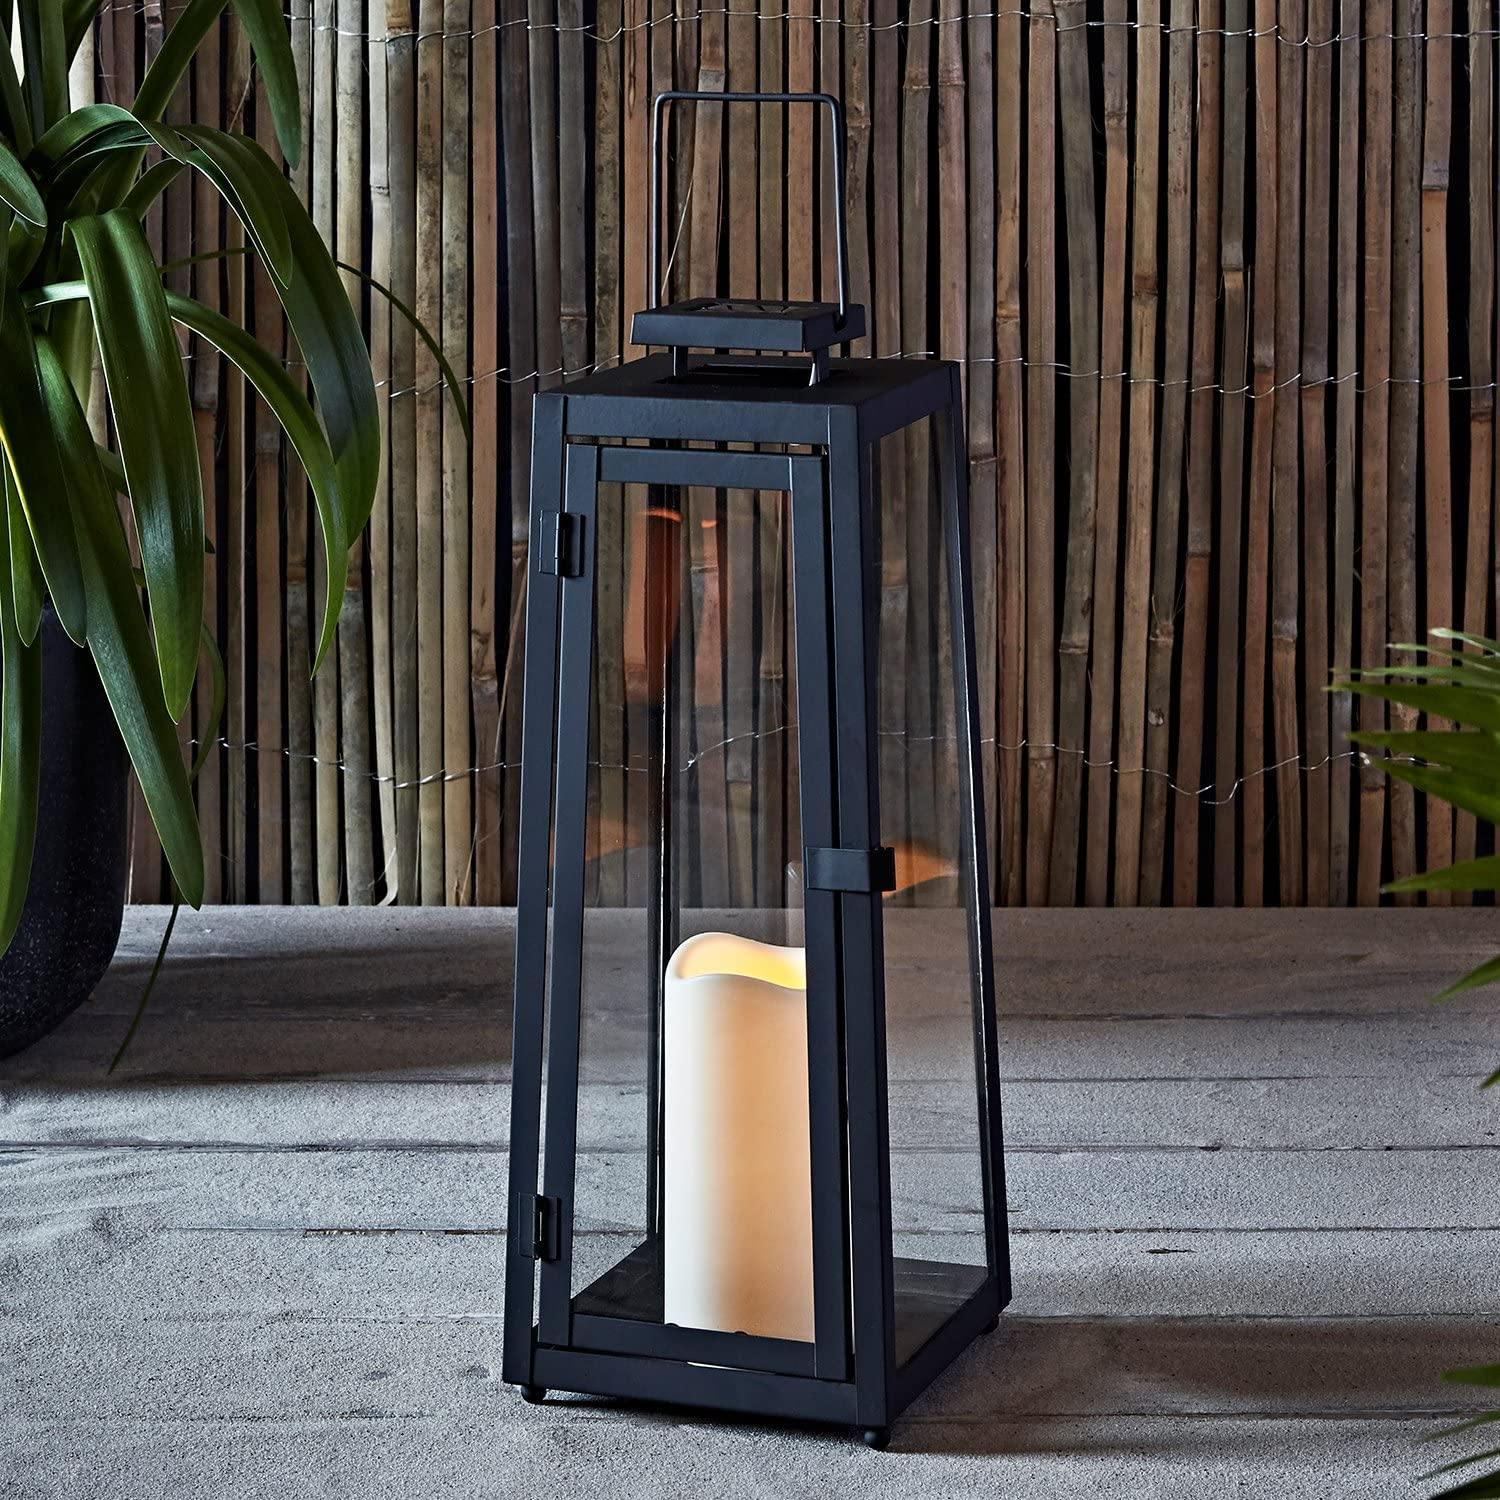 Lights4fun, Inc. Large Black Metal Solar Powered LED Fully Weatherproof Outdoor Garden Flameless Candle Lantern